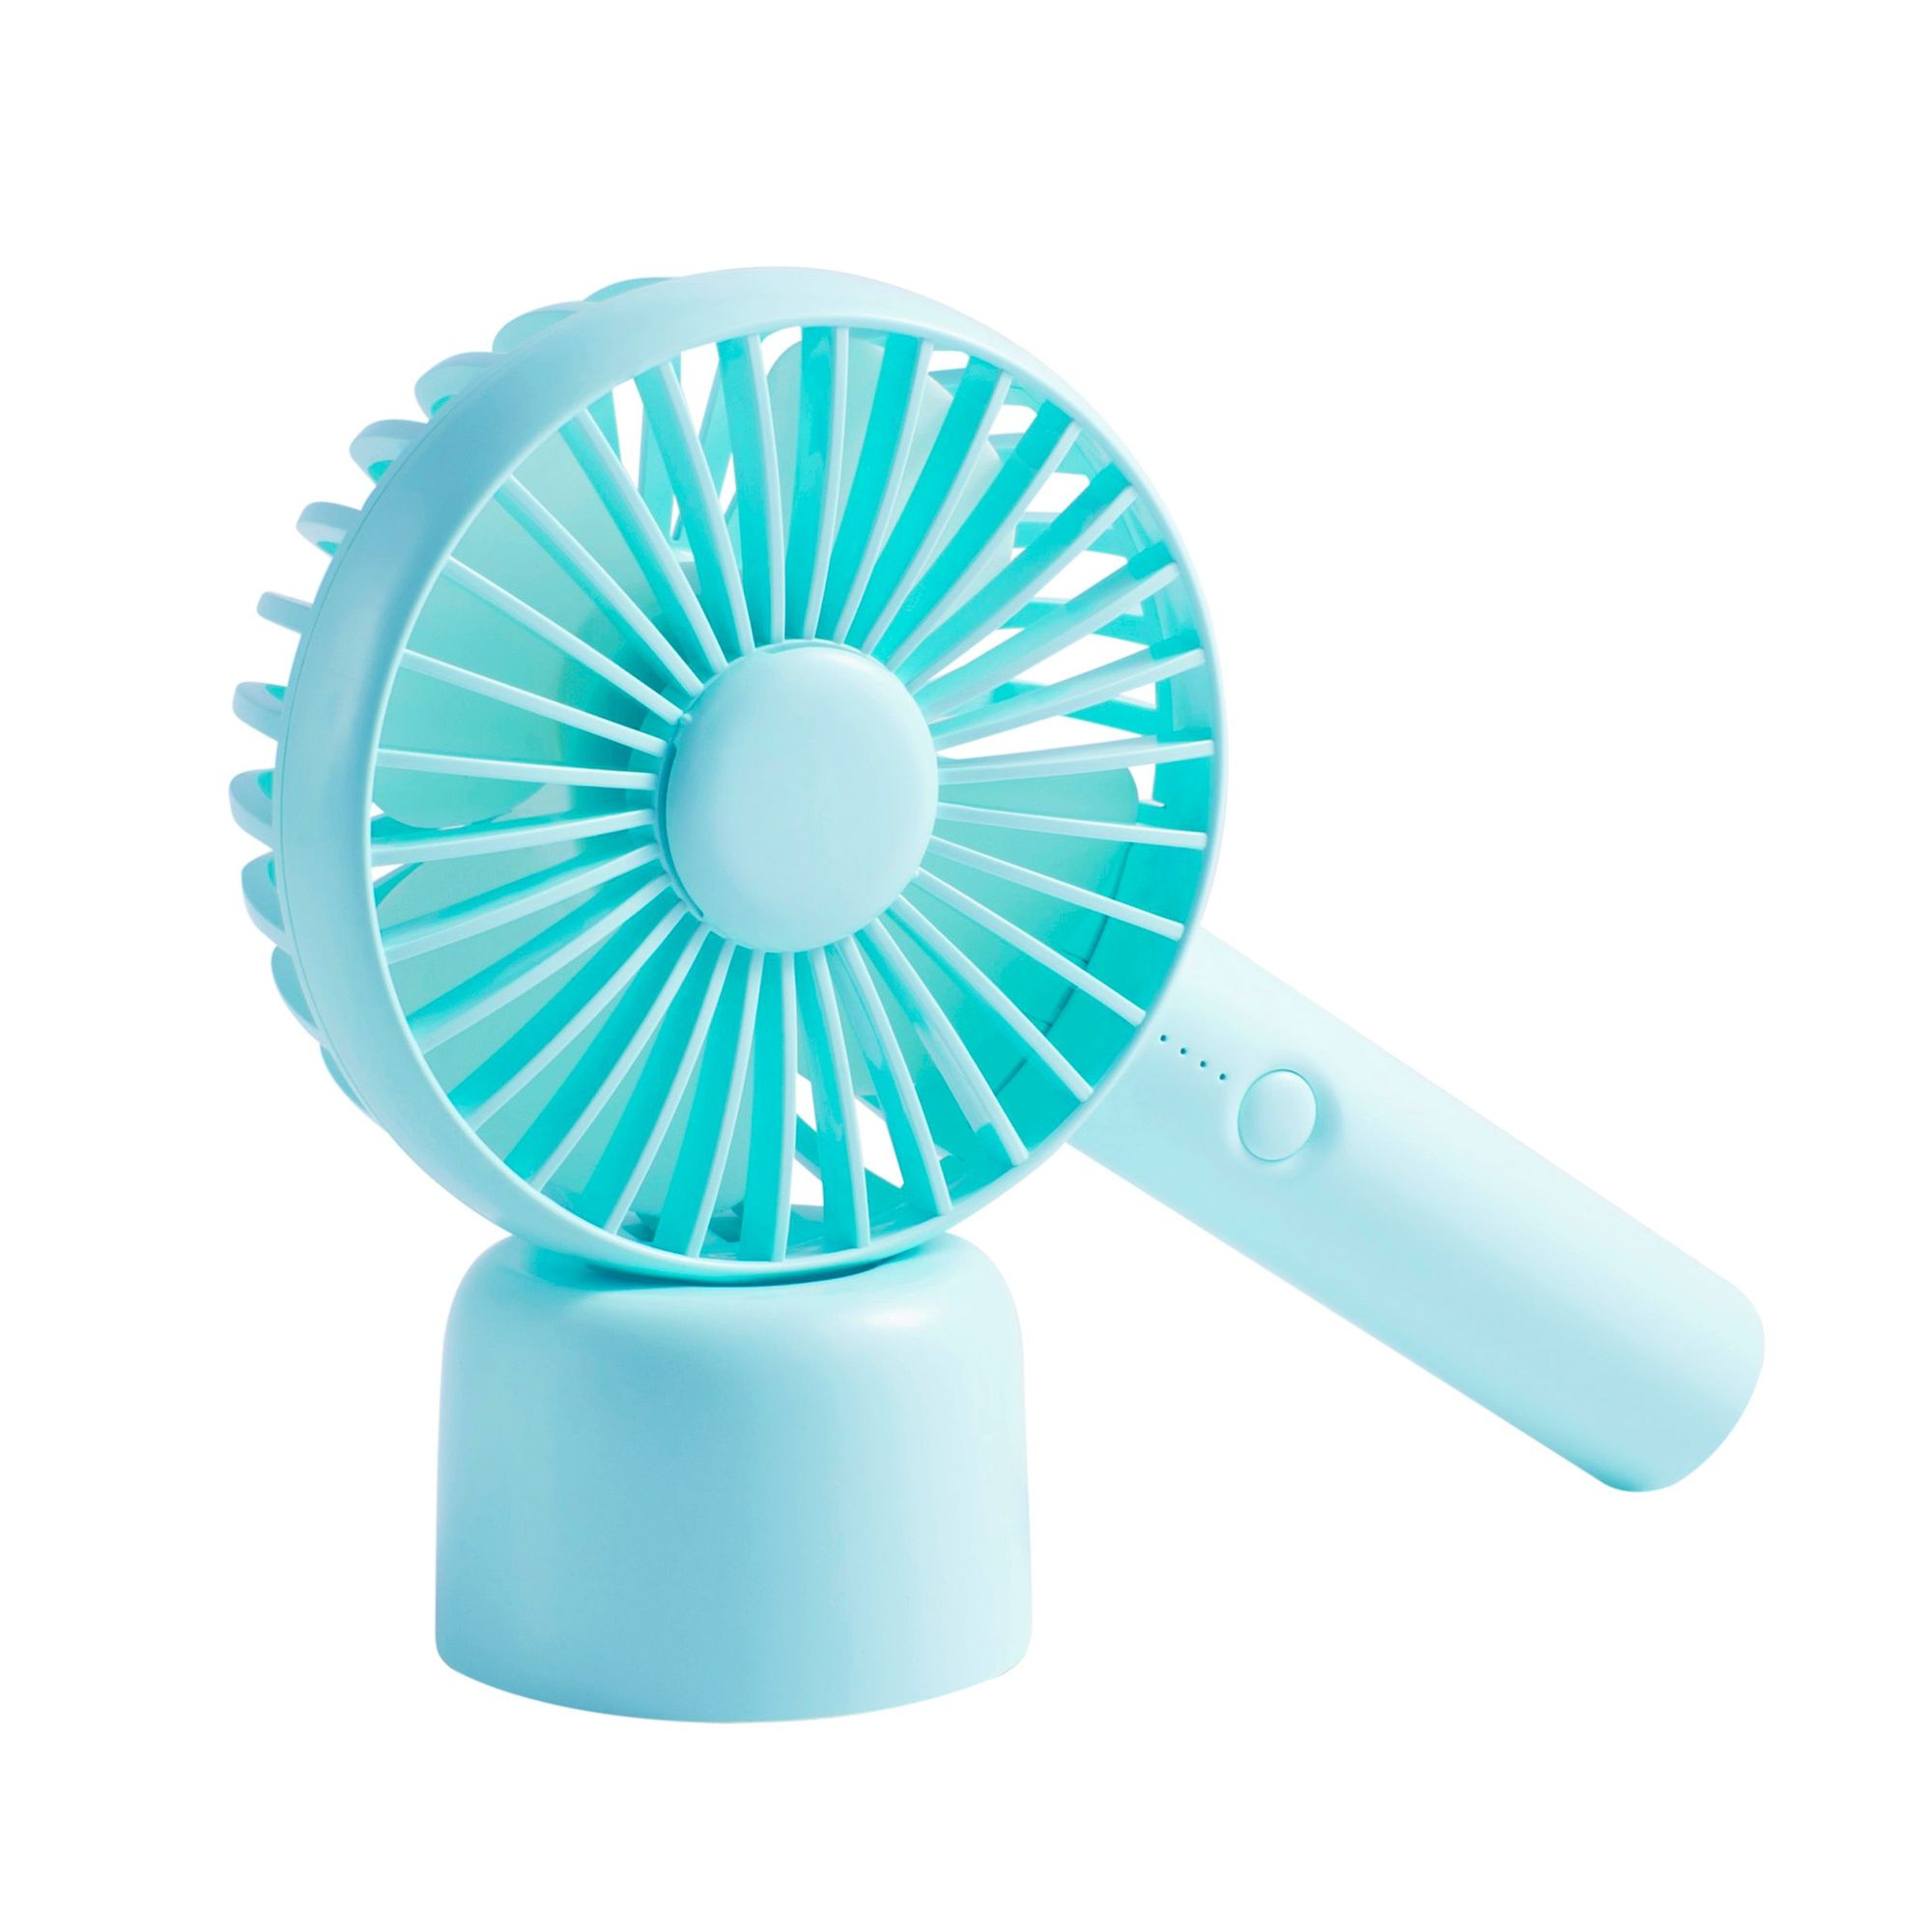 Office ChYoung Mini Handheld Fan with LED Light Outdoors and Travel Portable USB Rechargeable Battery Operated Desk Fan with Removable Stand Base for Home